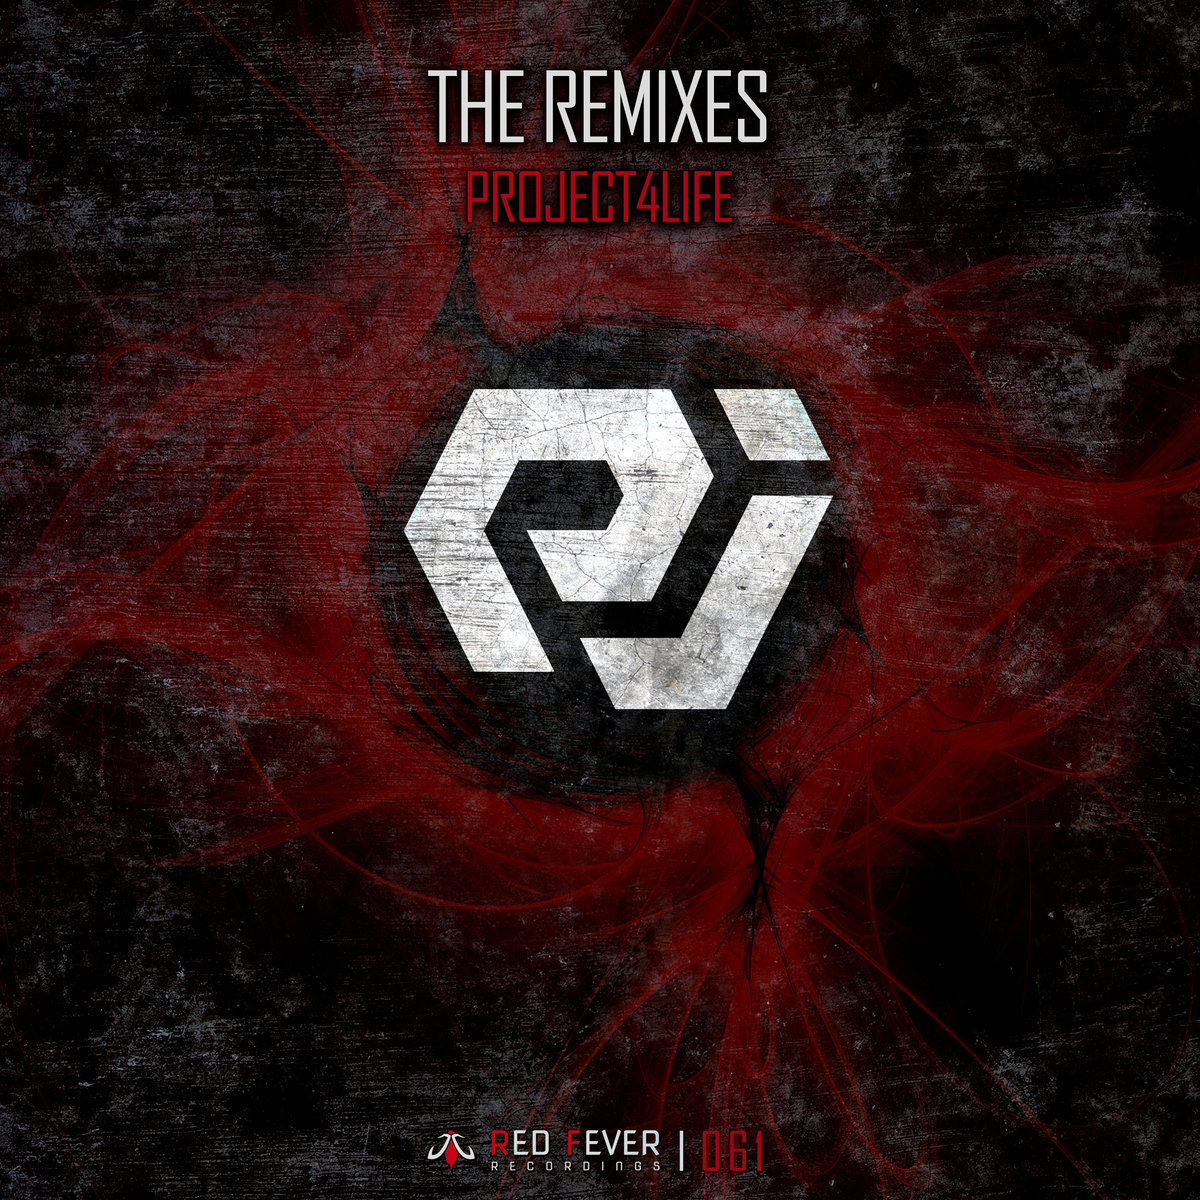 Project4life - The Remixes @ 'The Remixes' album (electronic, gabber)